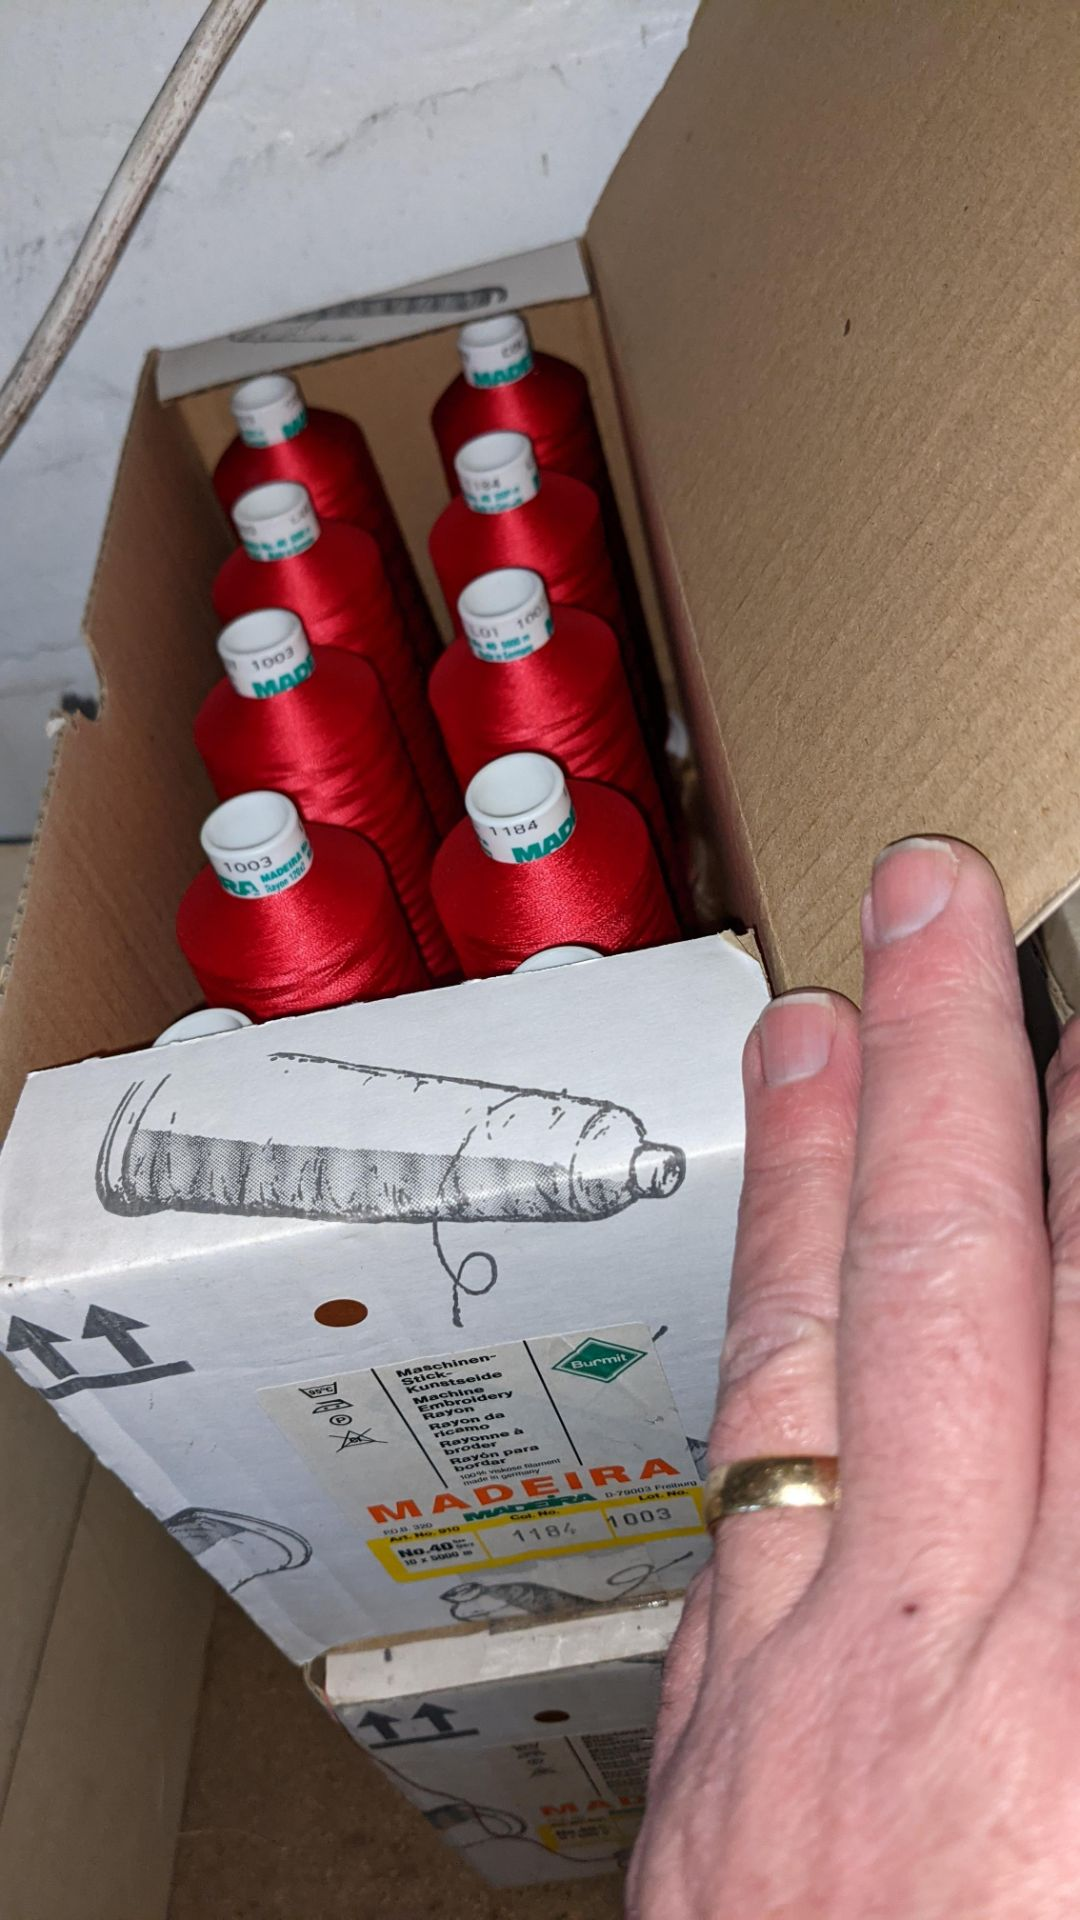 8 boxes of Madeira Burmit No. 40 rayon embroidery thread - Image 7 of 8